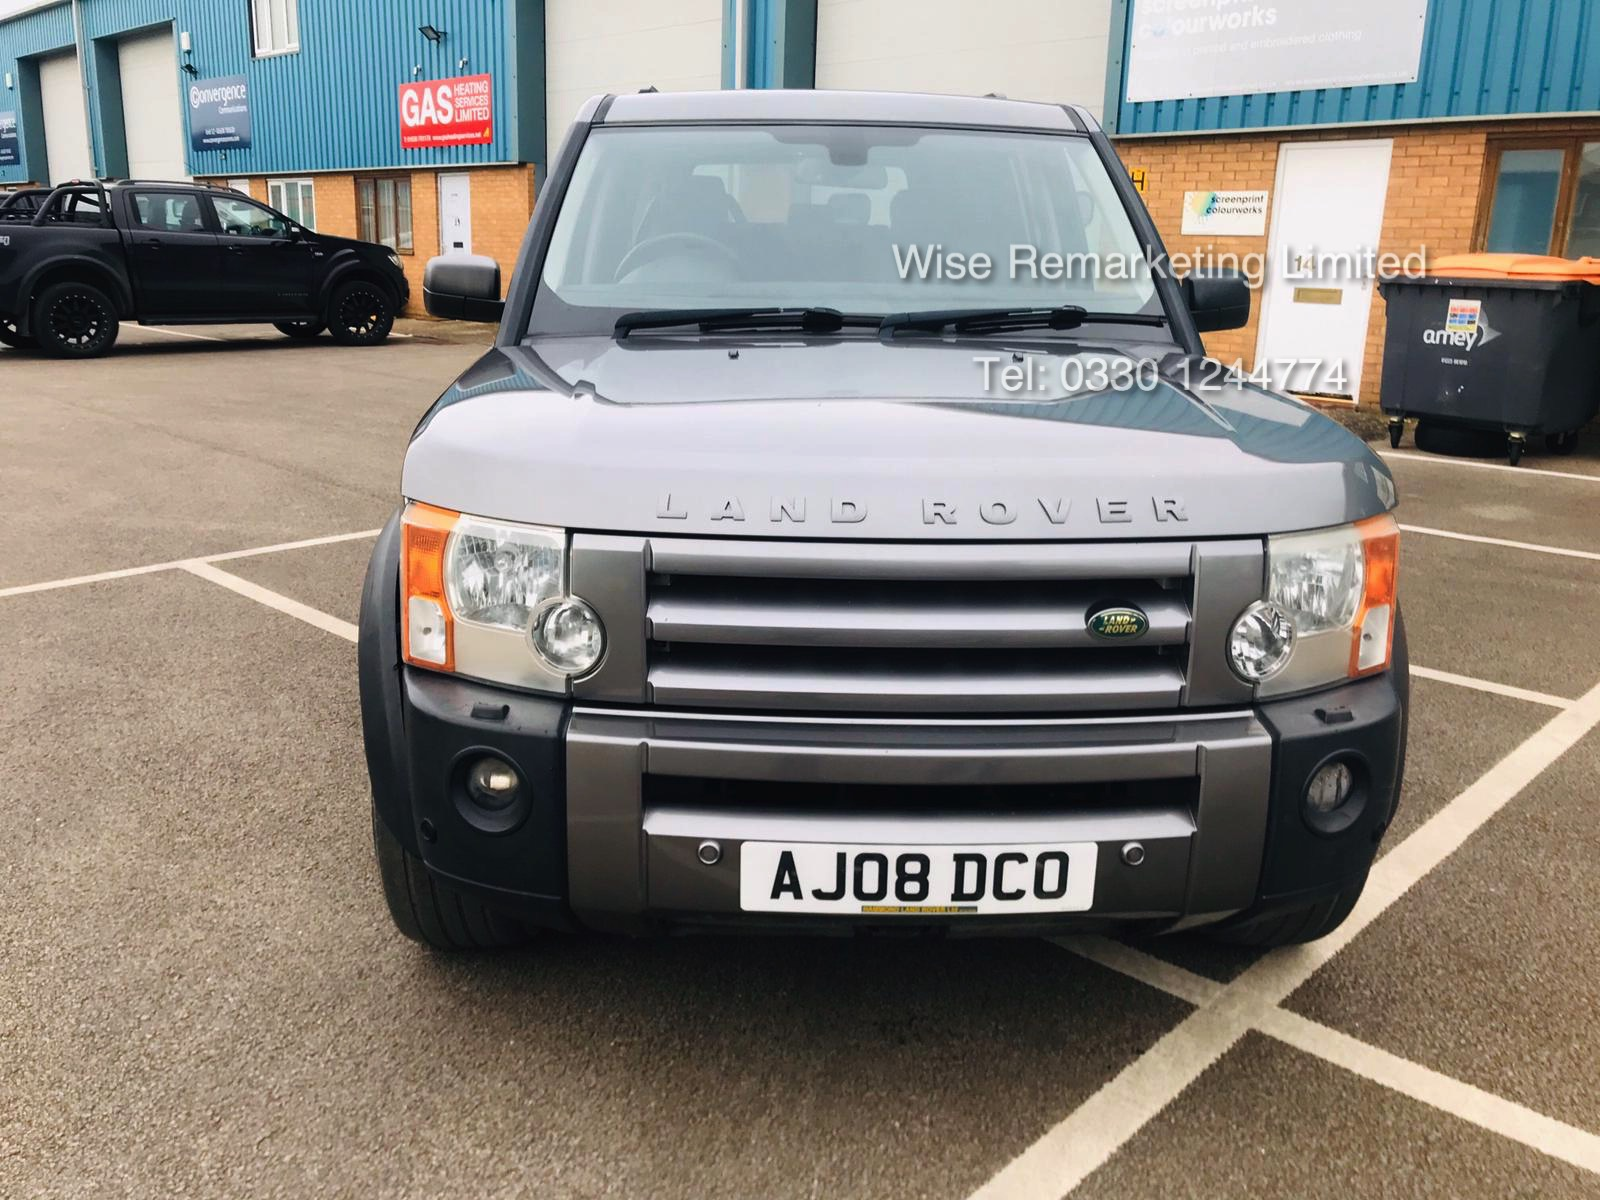 Land Rover Discovery SE 2.7 TDV6 Automatic - 2008 08 Reg - 7 seats - 1 Keeper - Service History - Image 5 of 22